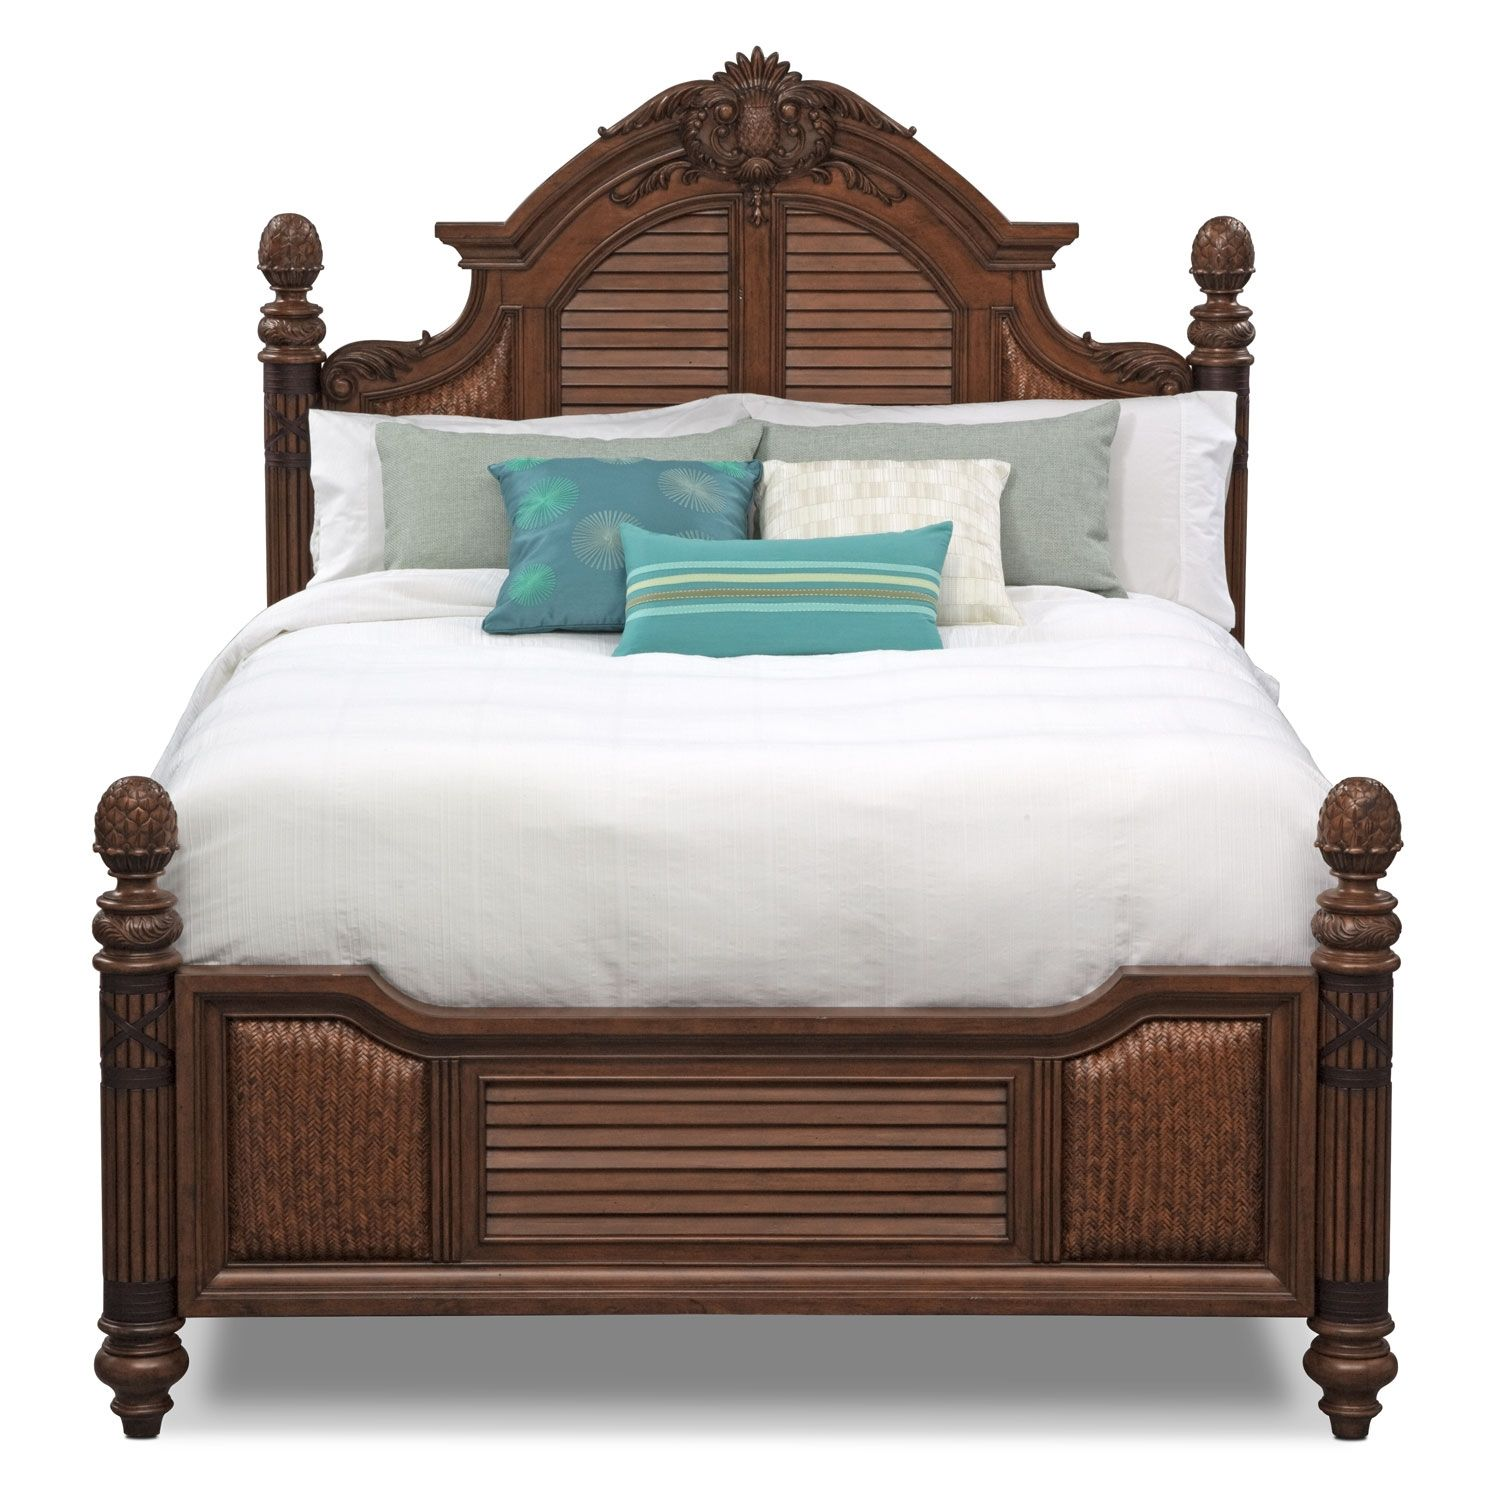 Key Largo King Bed Value City Furniture For The Home